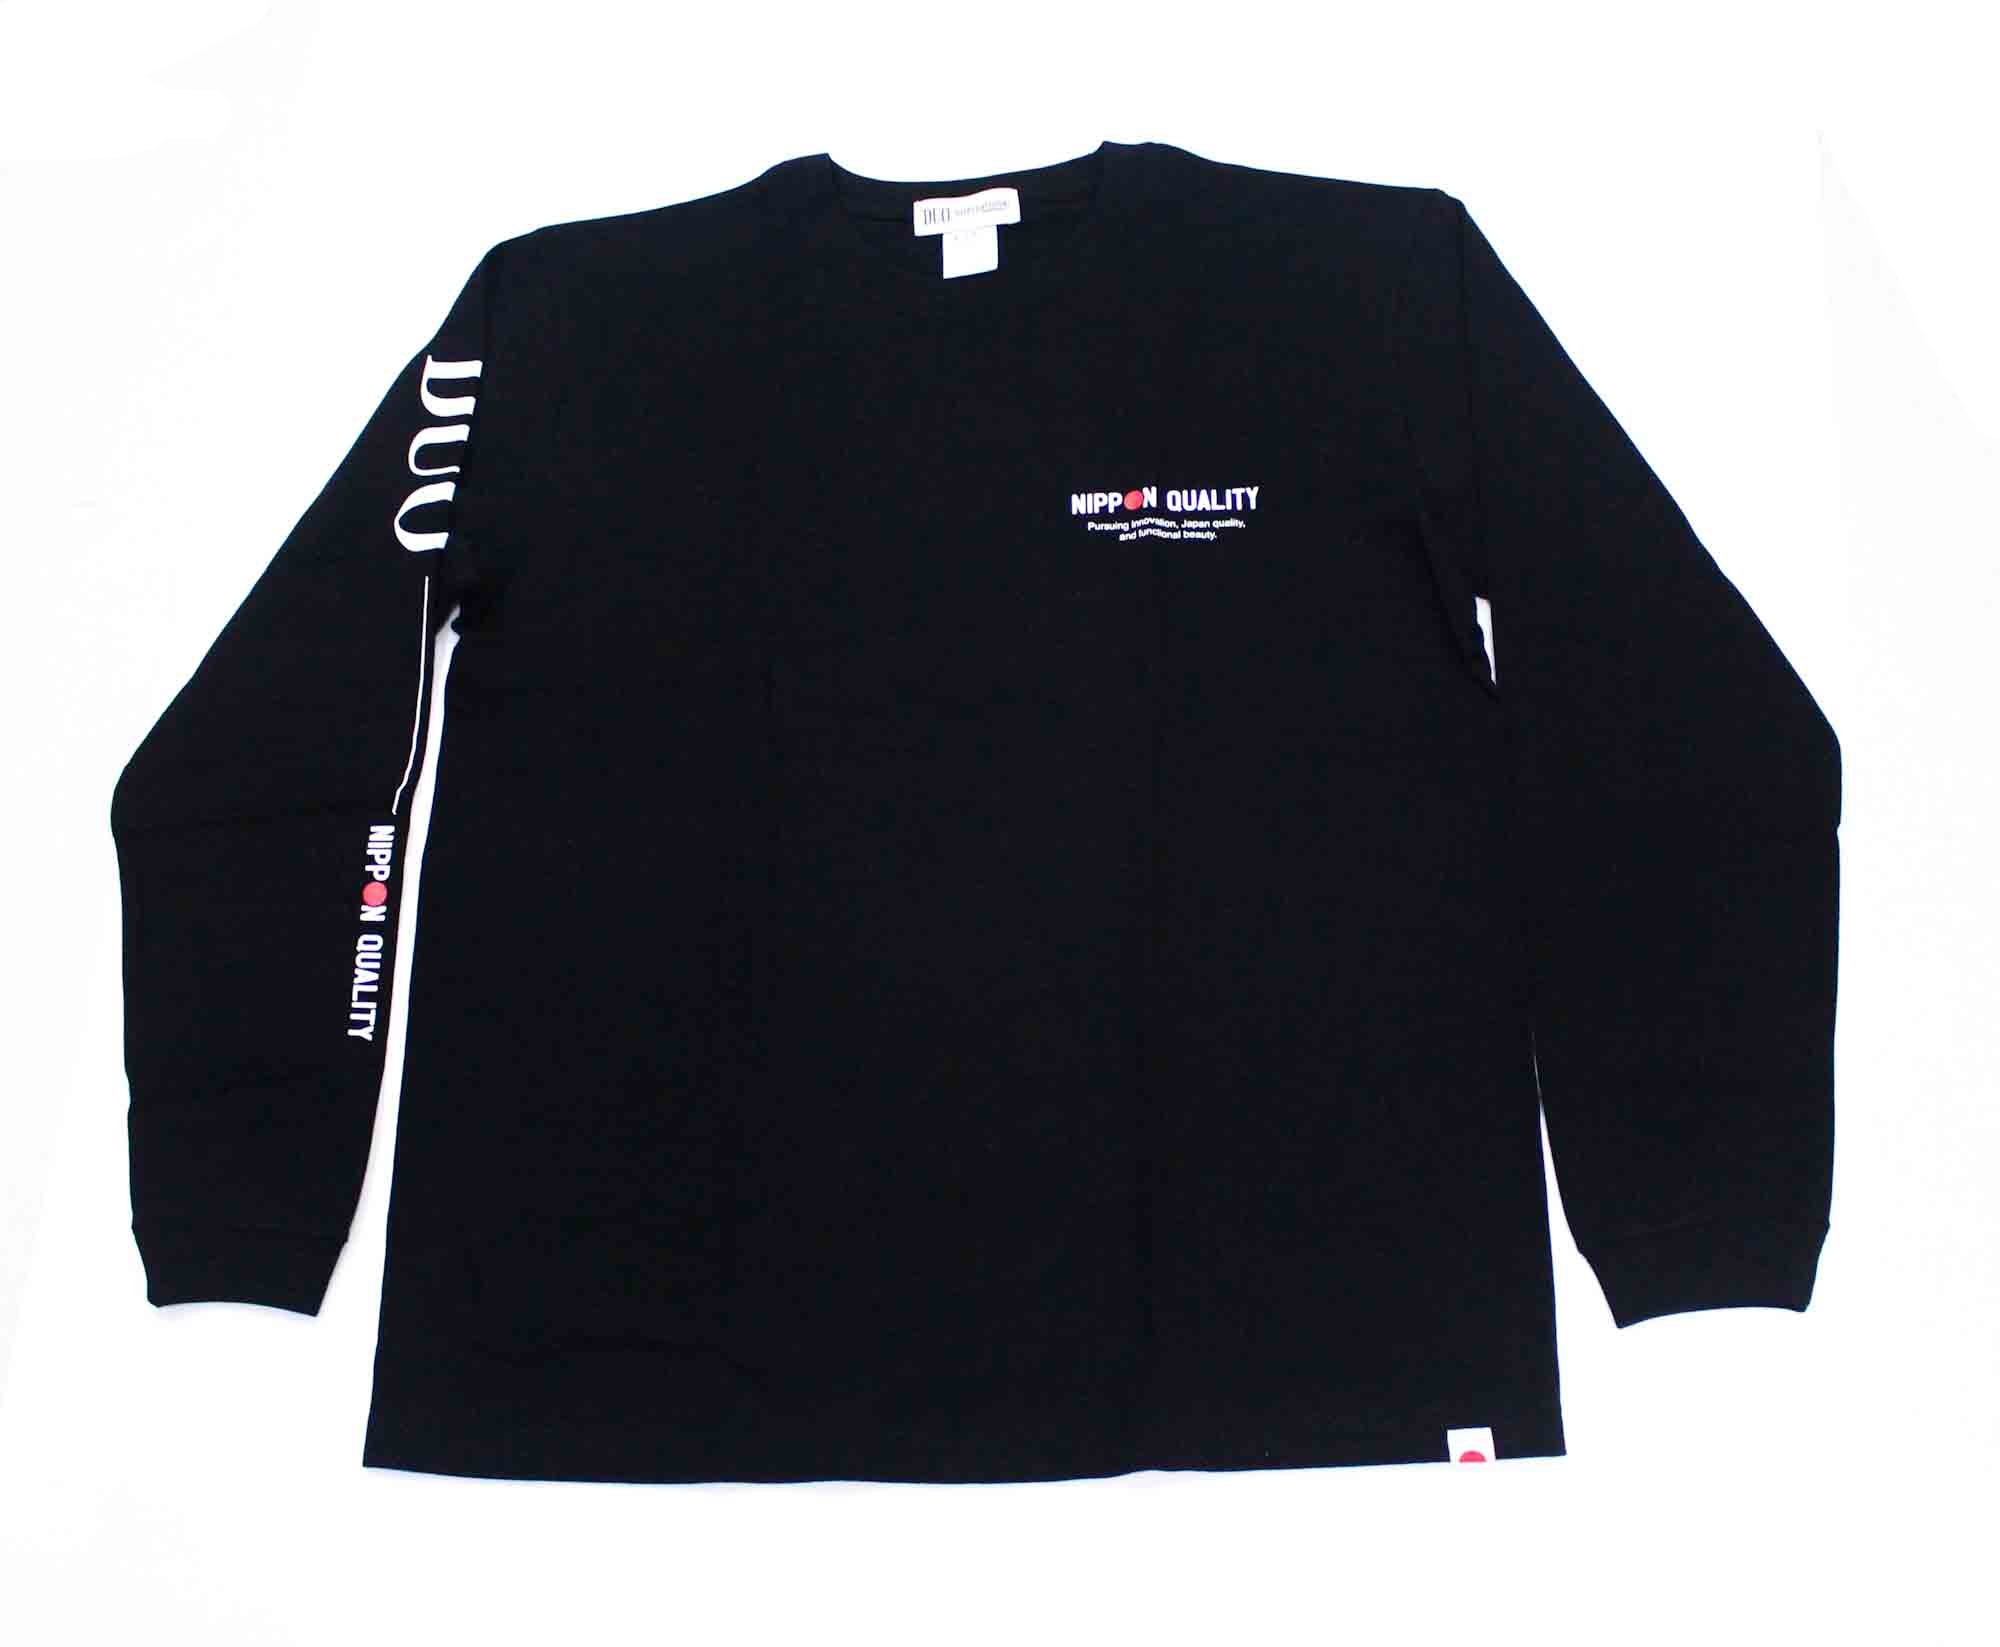 Duo T Shirt Long Sleeve 2021 Black Size XL (1034)